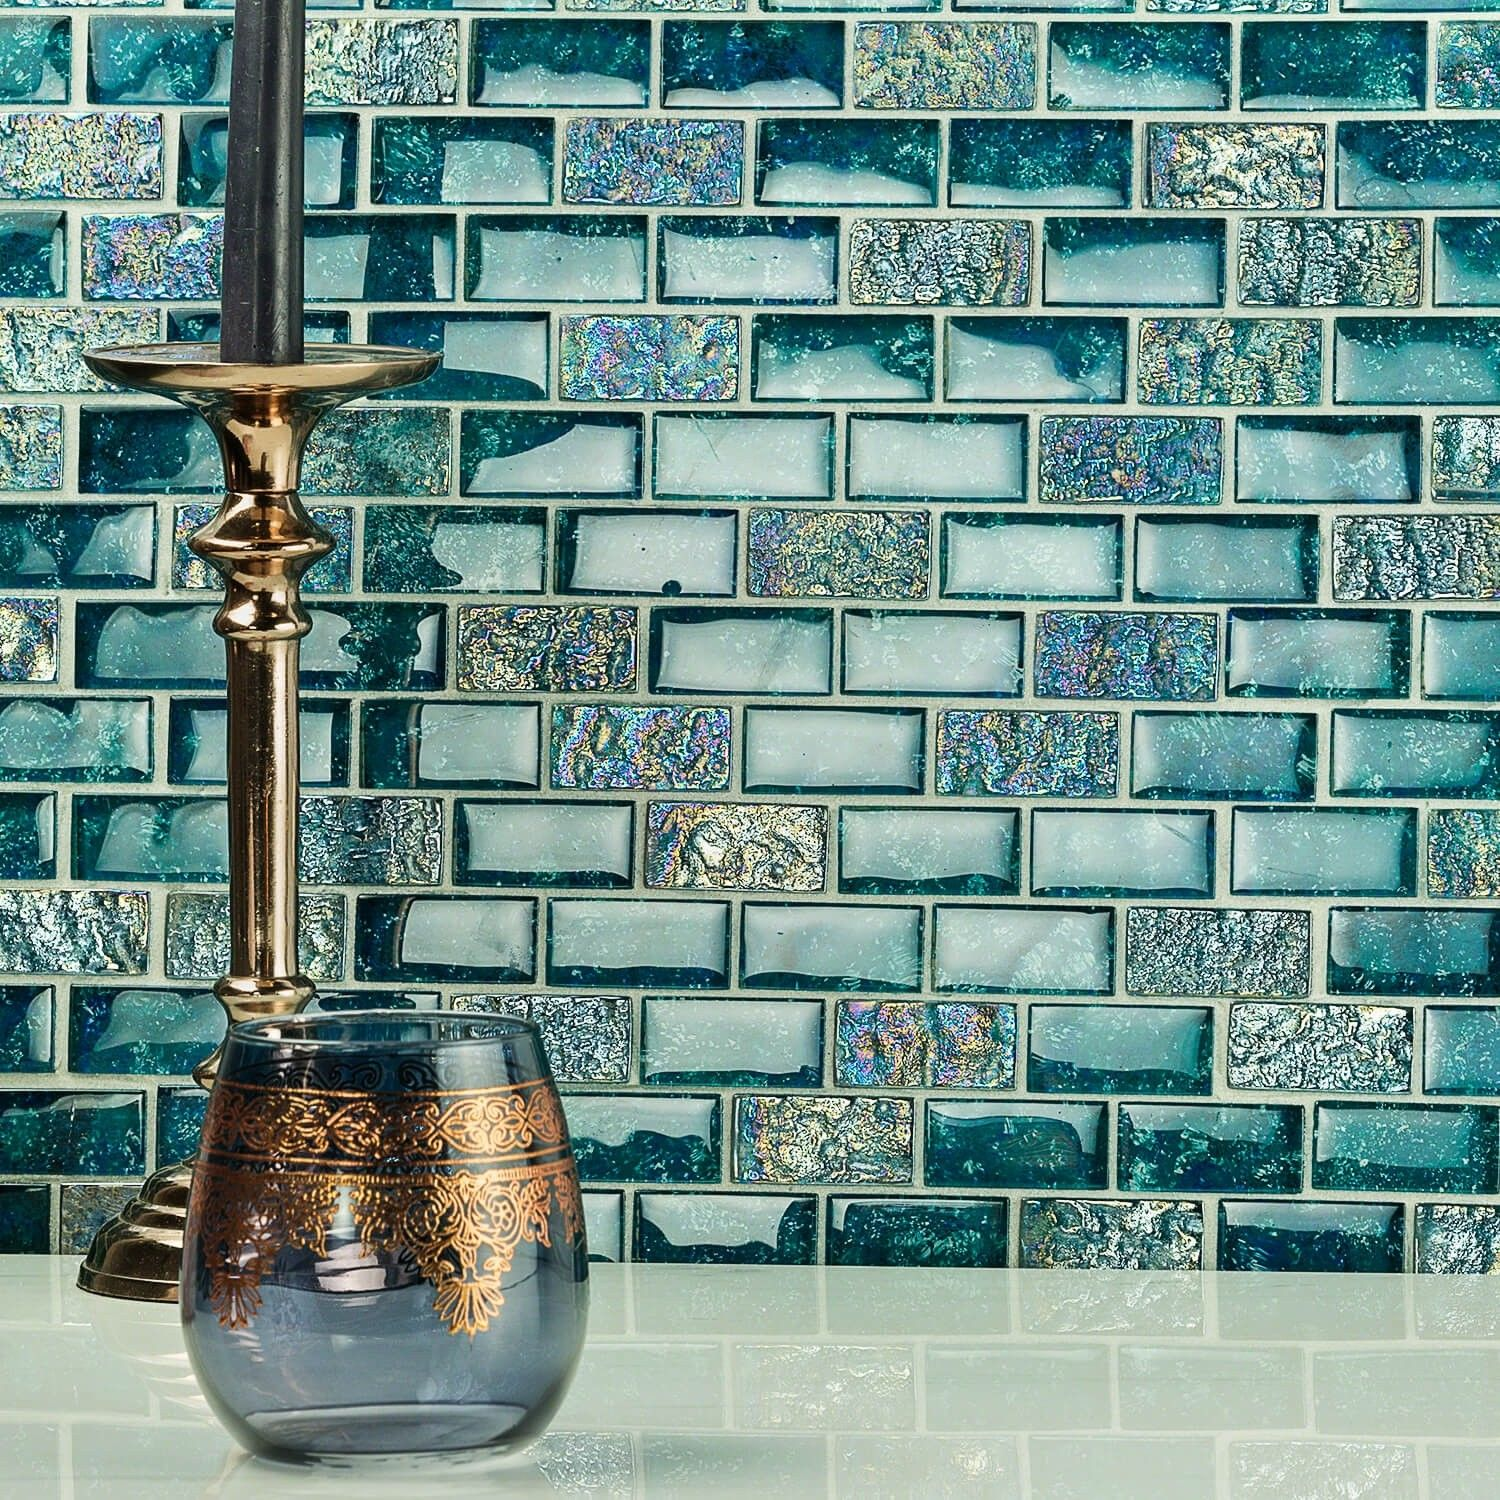 Laguna Iridescent Aquamarine 1x2 Brick Glass Tile | Pinterest ...